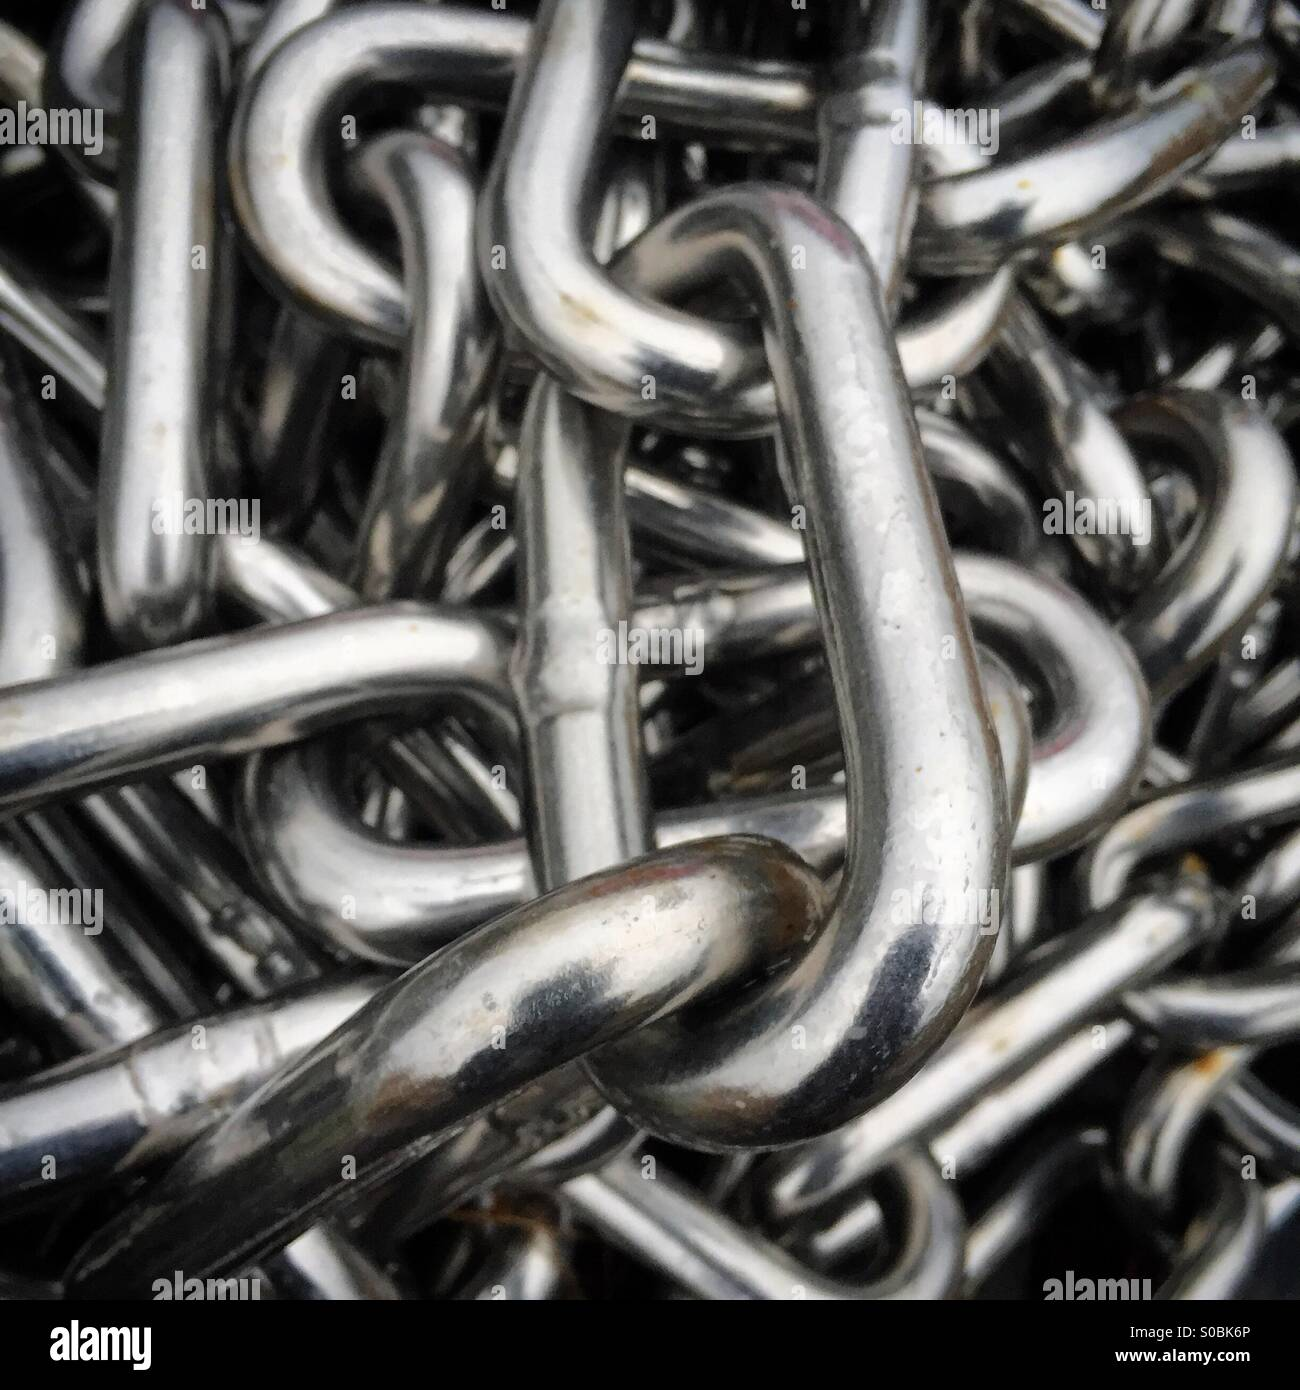 A shiny pile of metal links chain - Stock Image